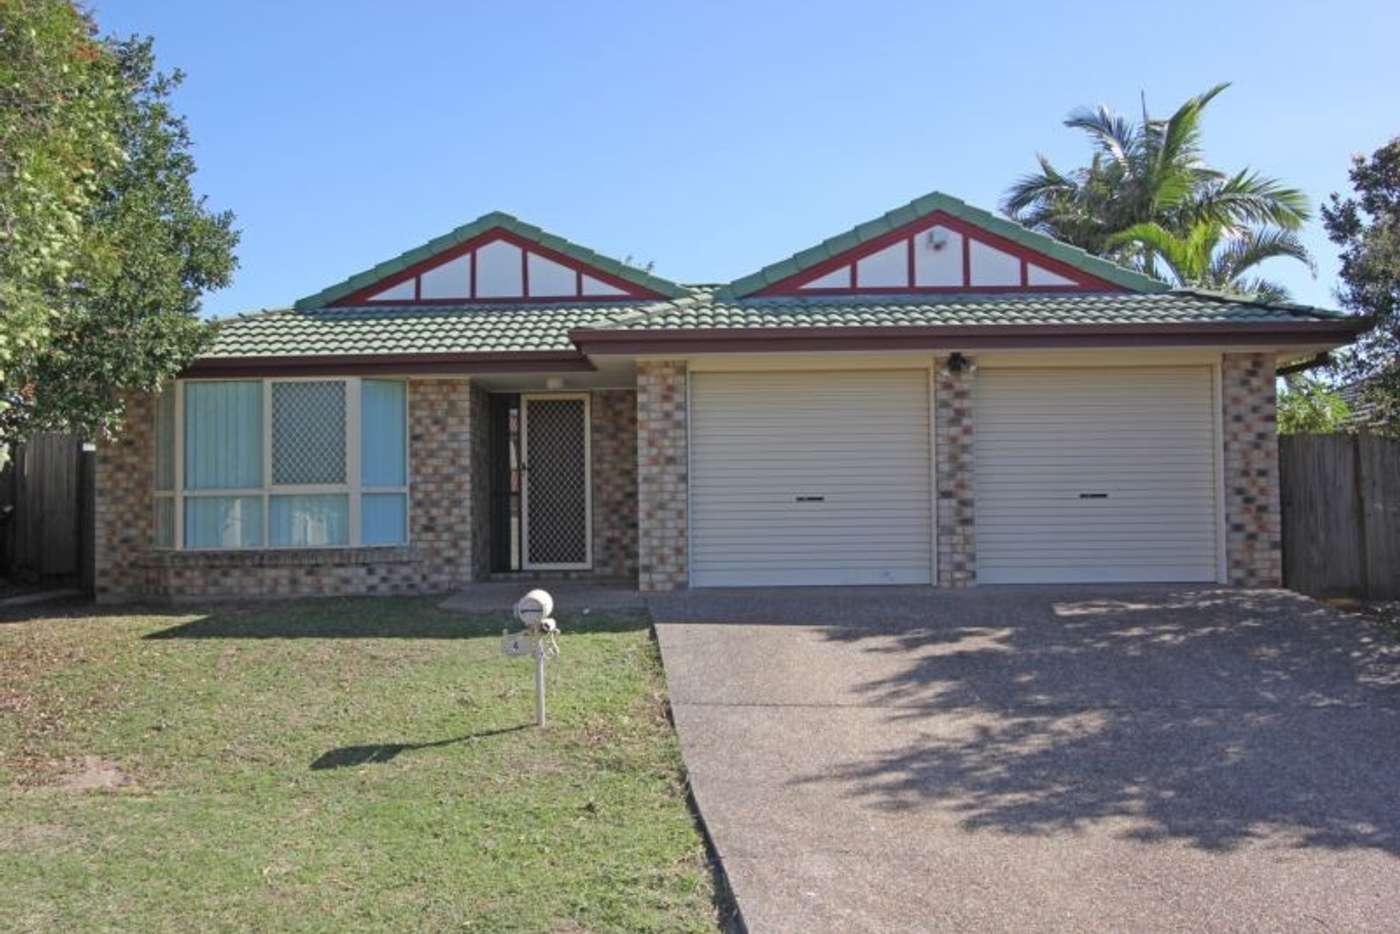 Main view of Homely house listing, 4 Gleneagles Crescent, Oxley QLD 4075